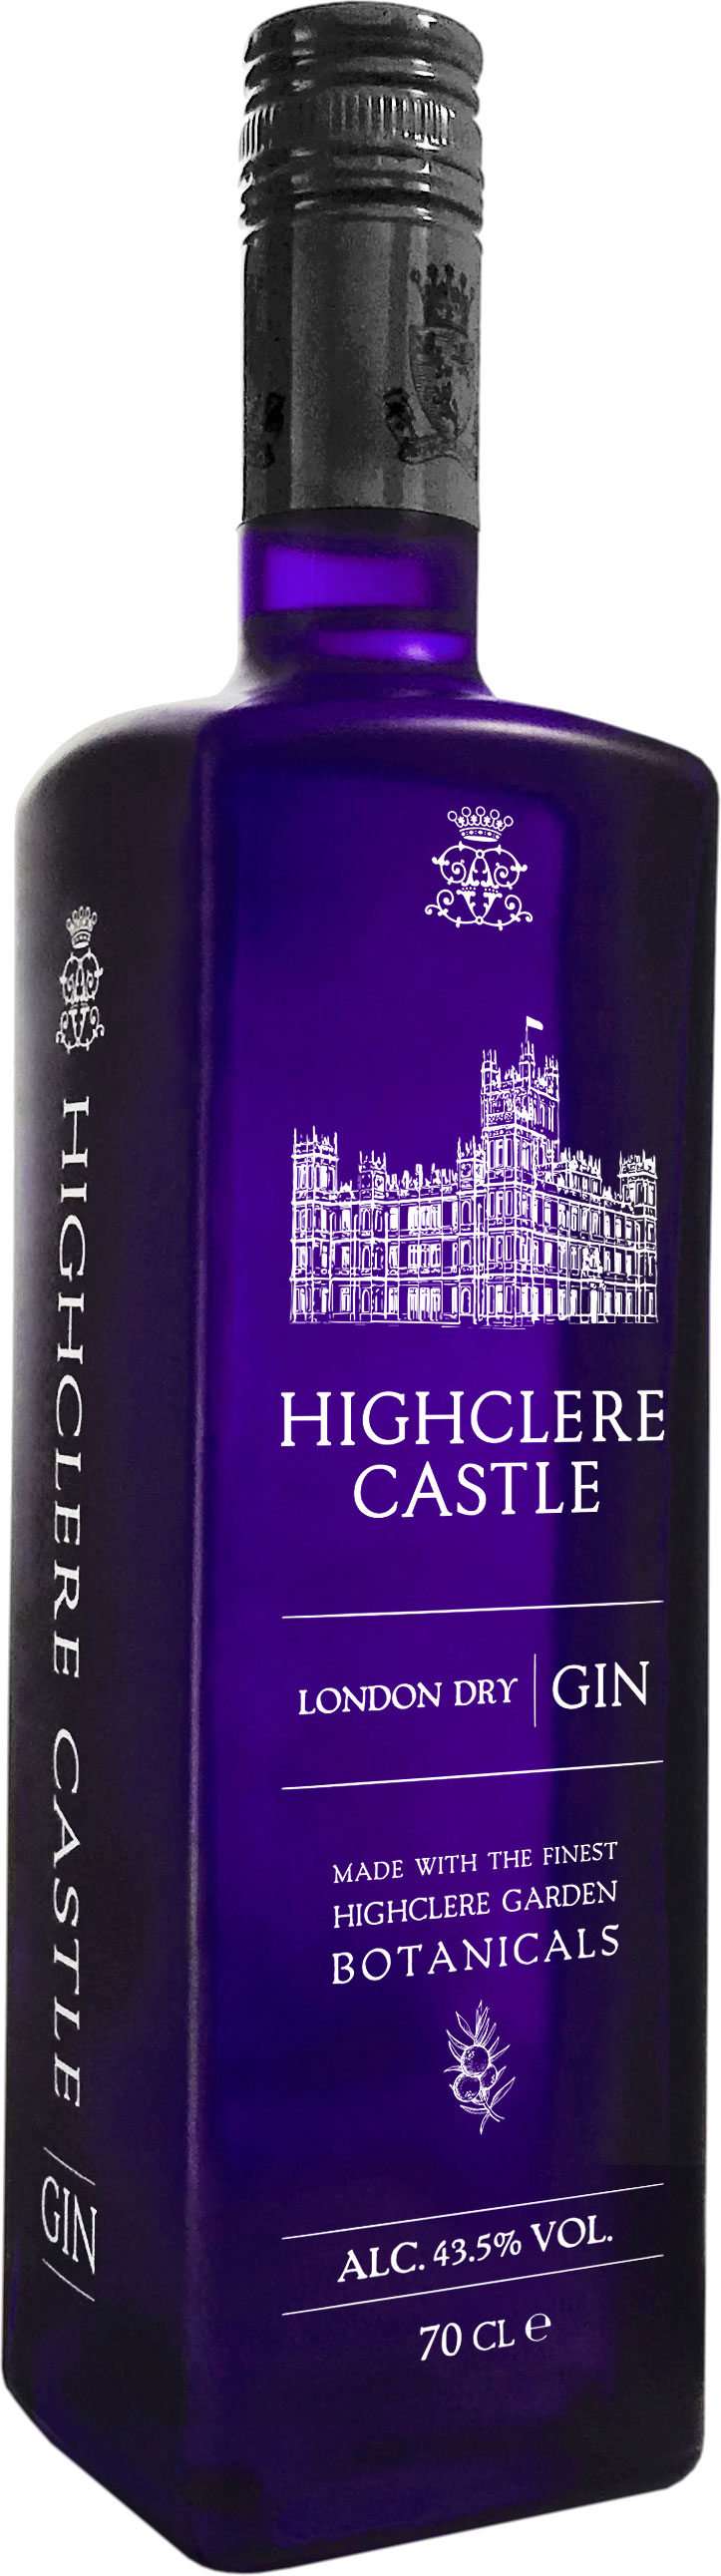 Highclere Castle Gin 70cl Bottle